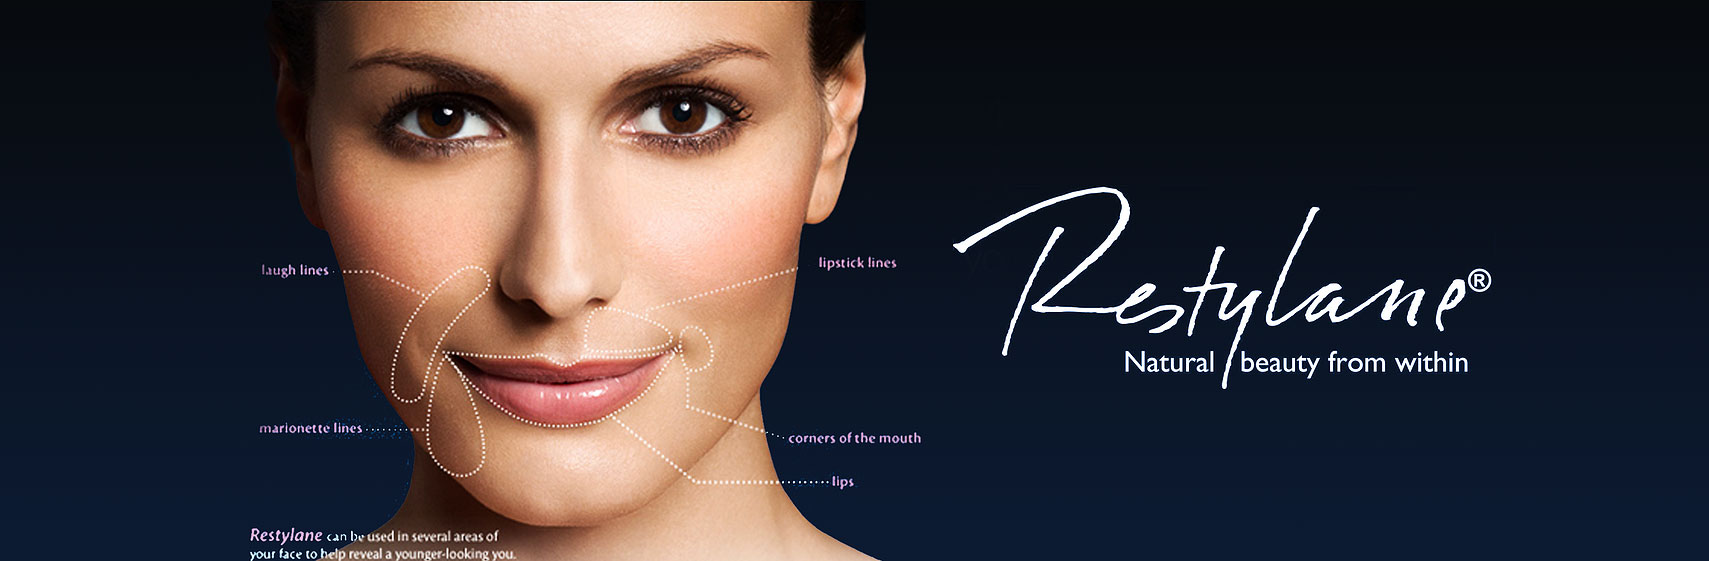 Restylane® - Natural Beauty from within